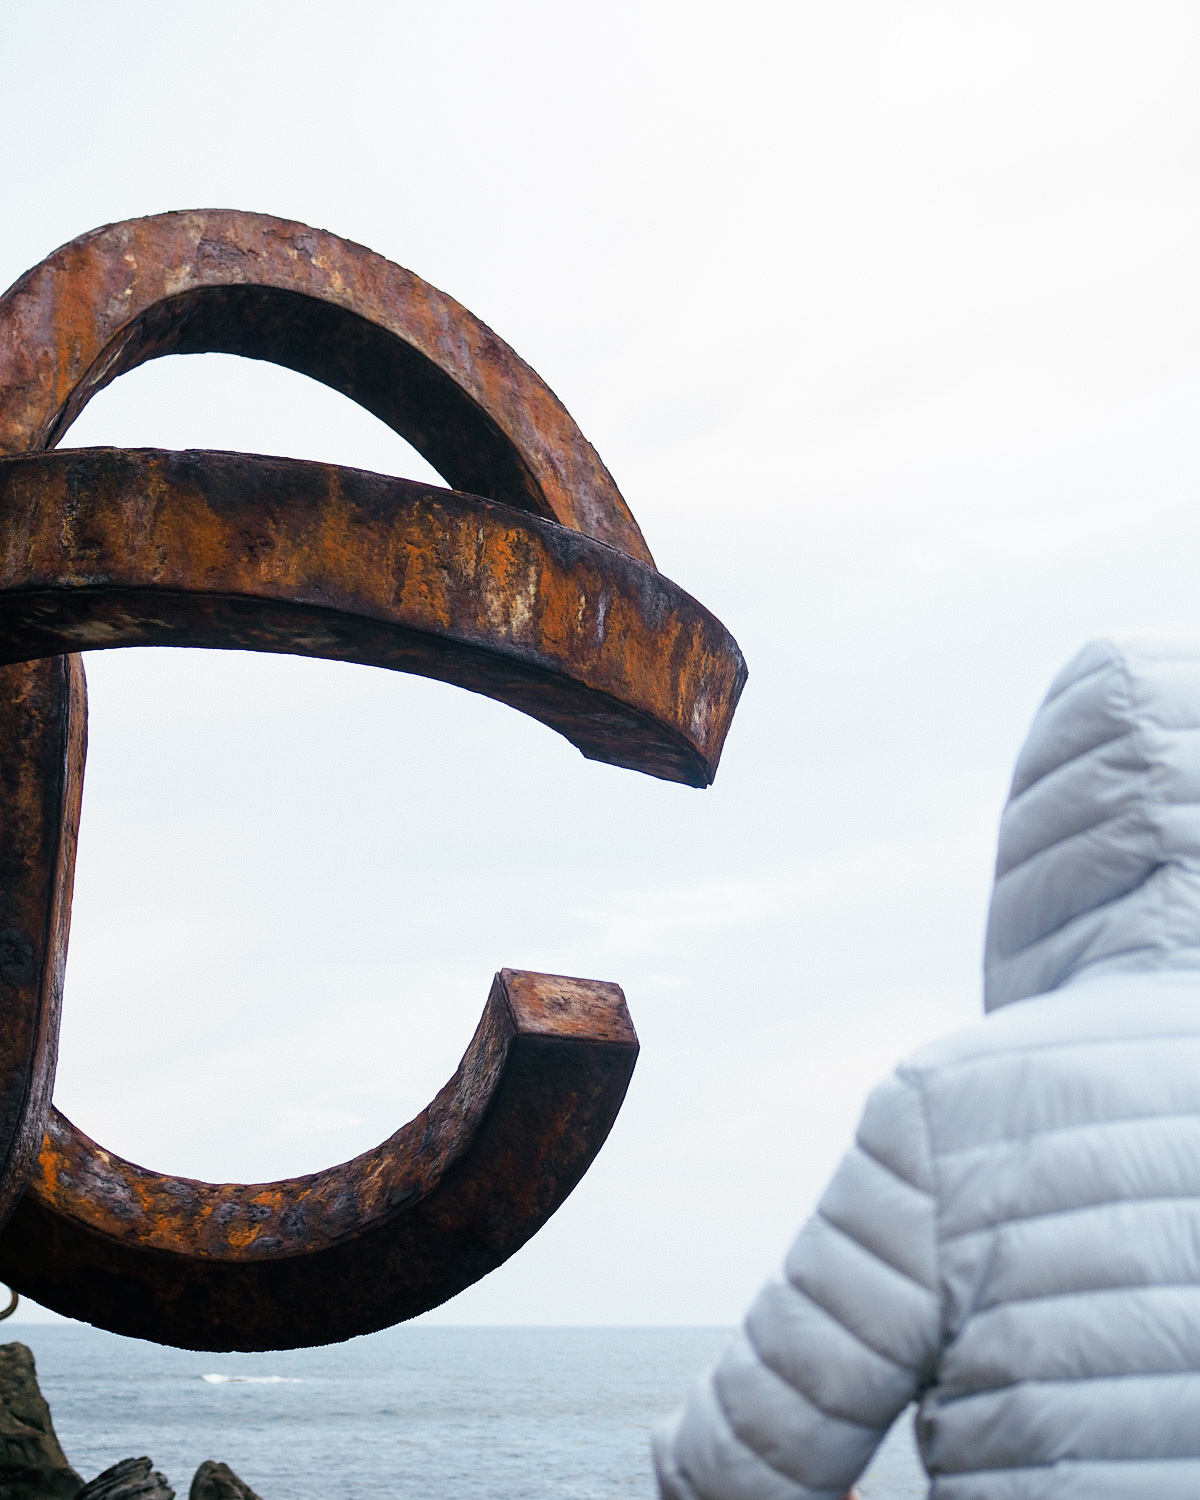 CHILLIDA-PEINE-DONOSTI-NORTH-SAILS-ANNA-PONSA-21